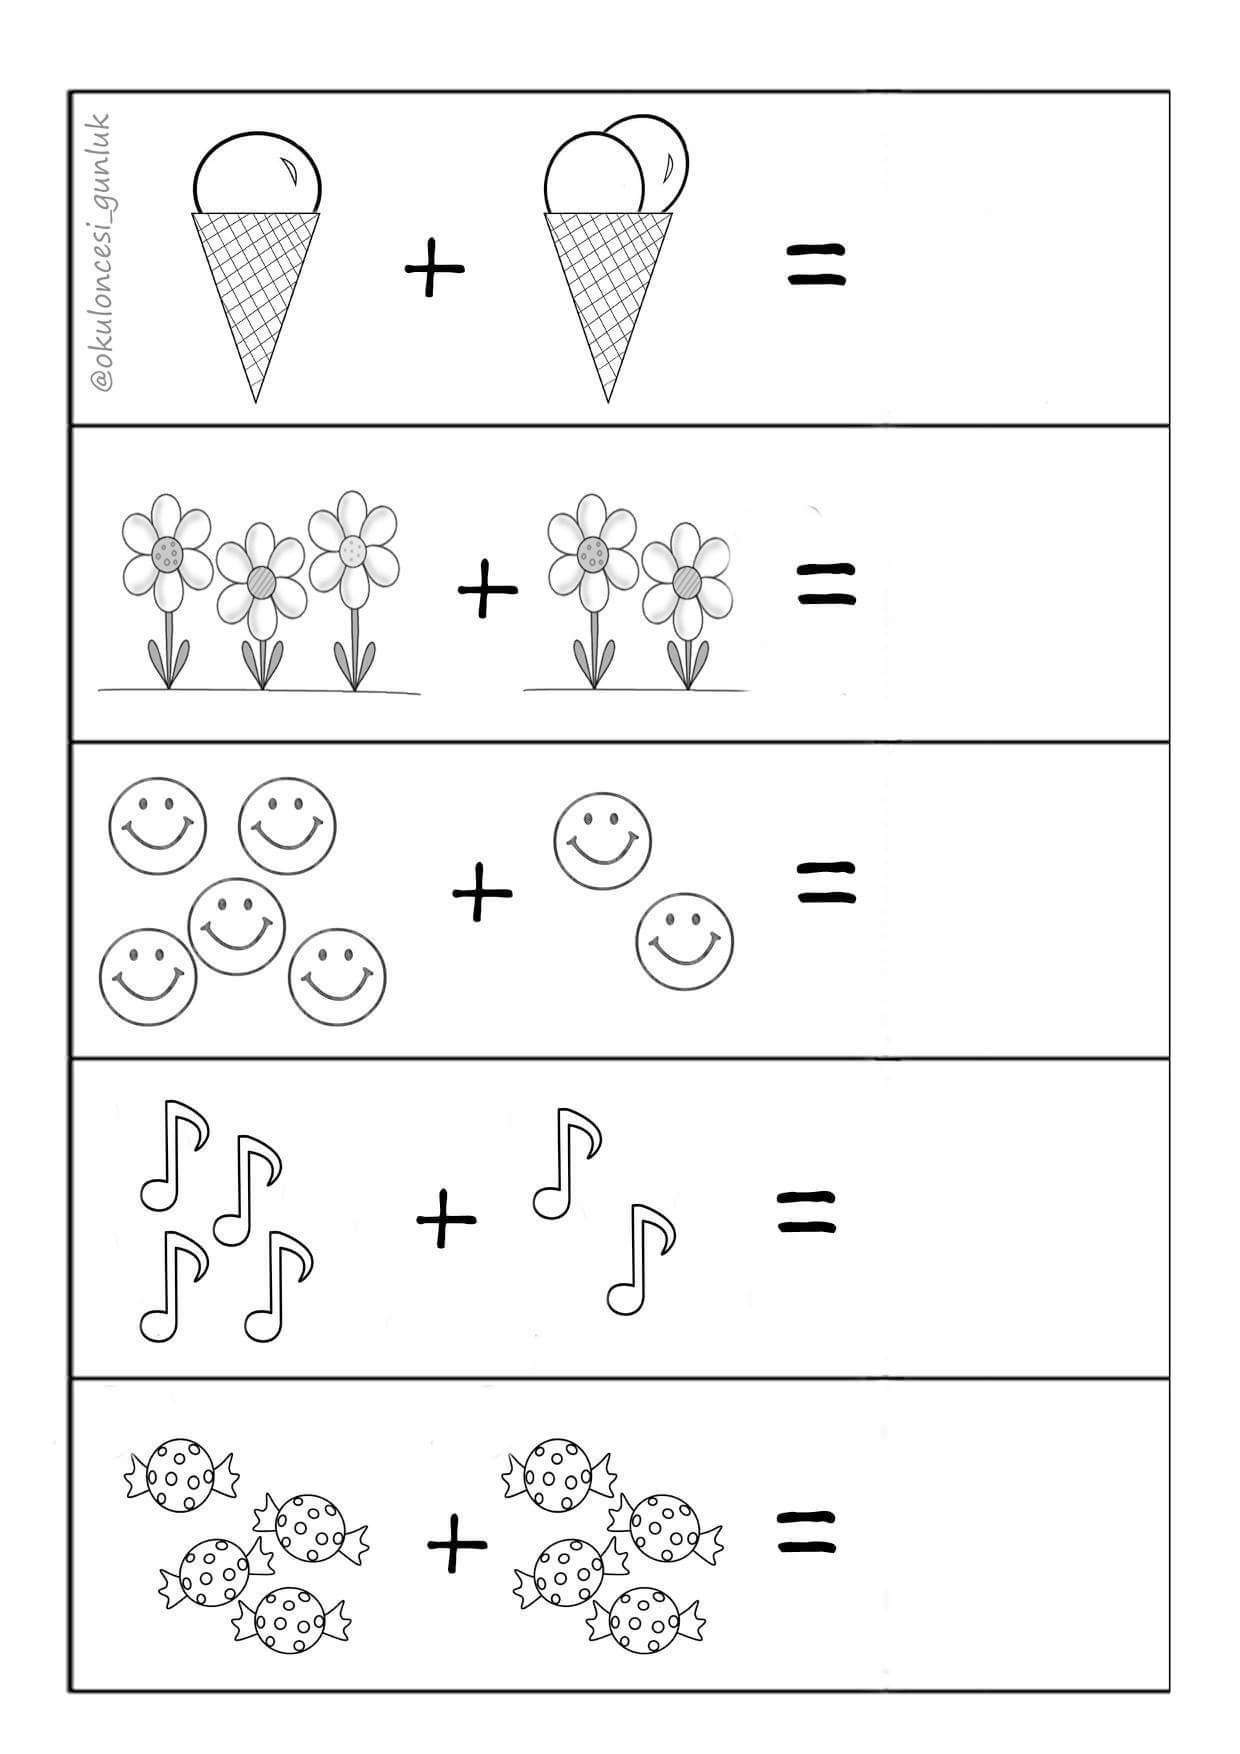 Kindergarten Math Worksheets Kindergarten Math Kindergarten Math Activities Prescho Kindergarten Math Worksheets Preschool Math Worksheets Kindergarten Math